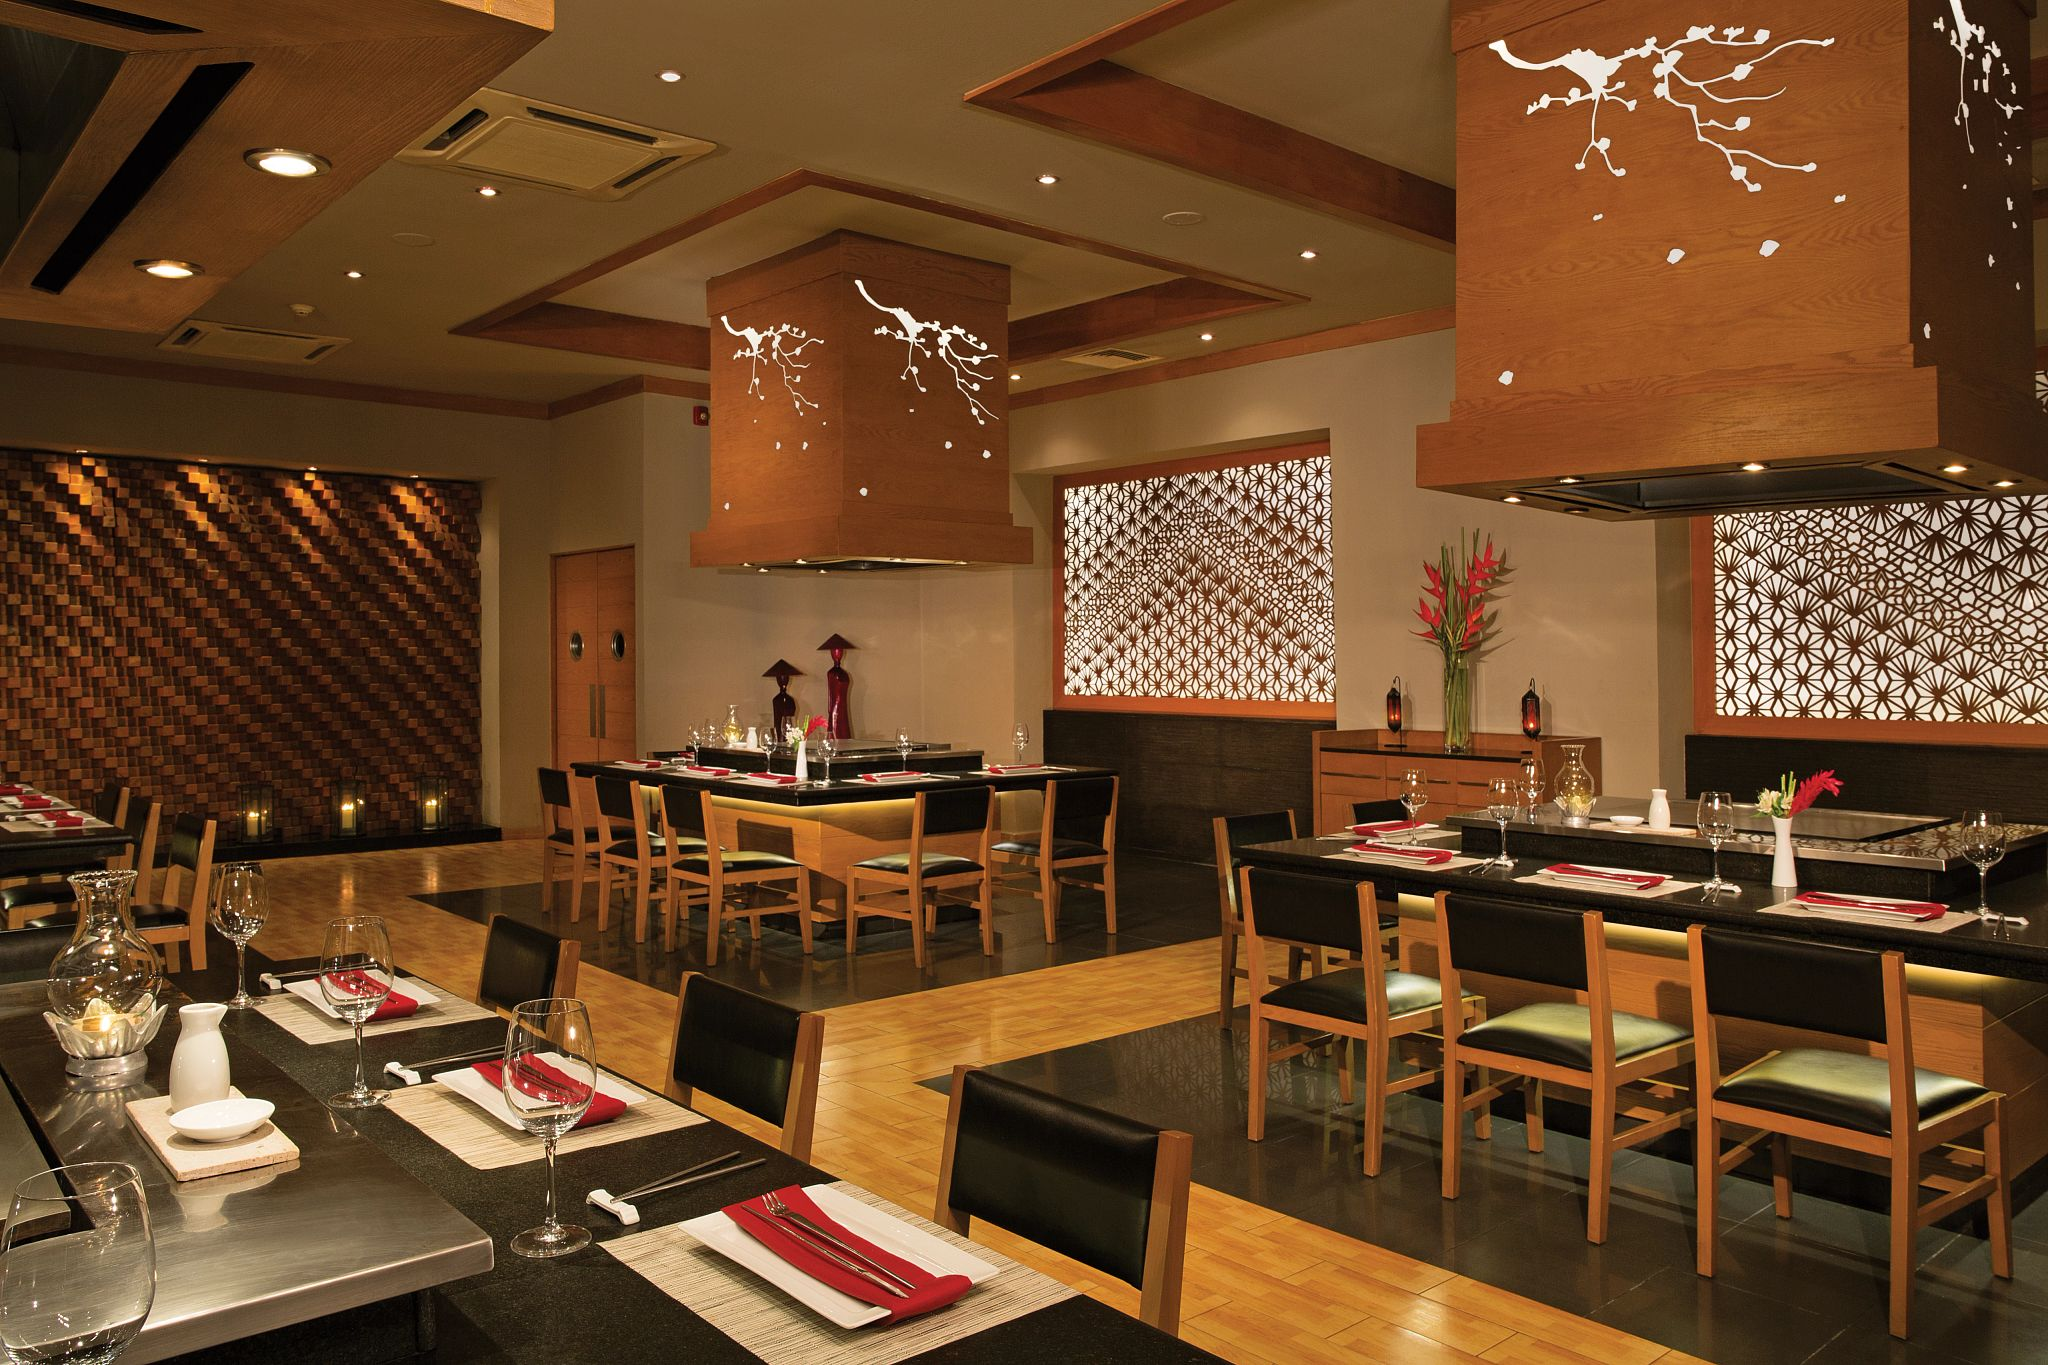 interior of a restaurant with Asian inspired decor